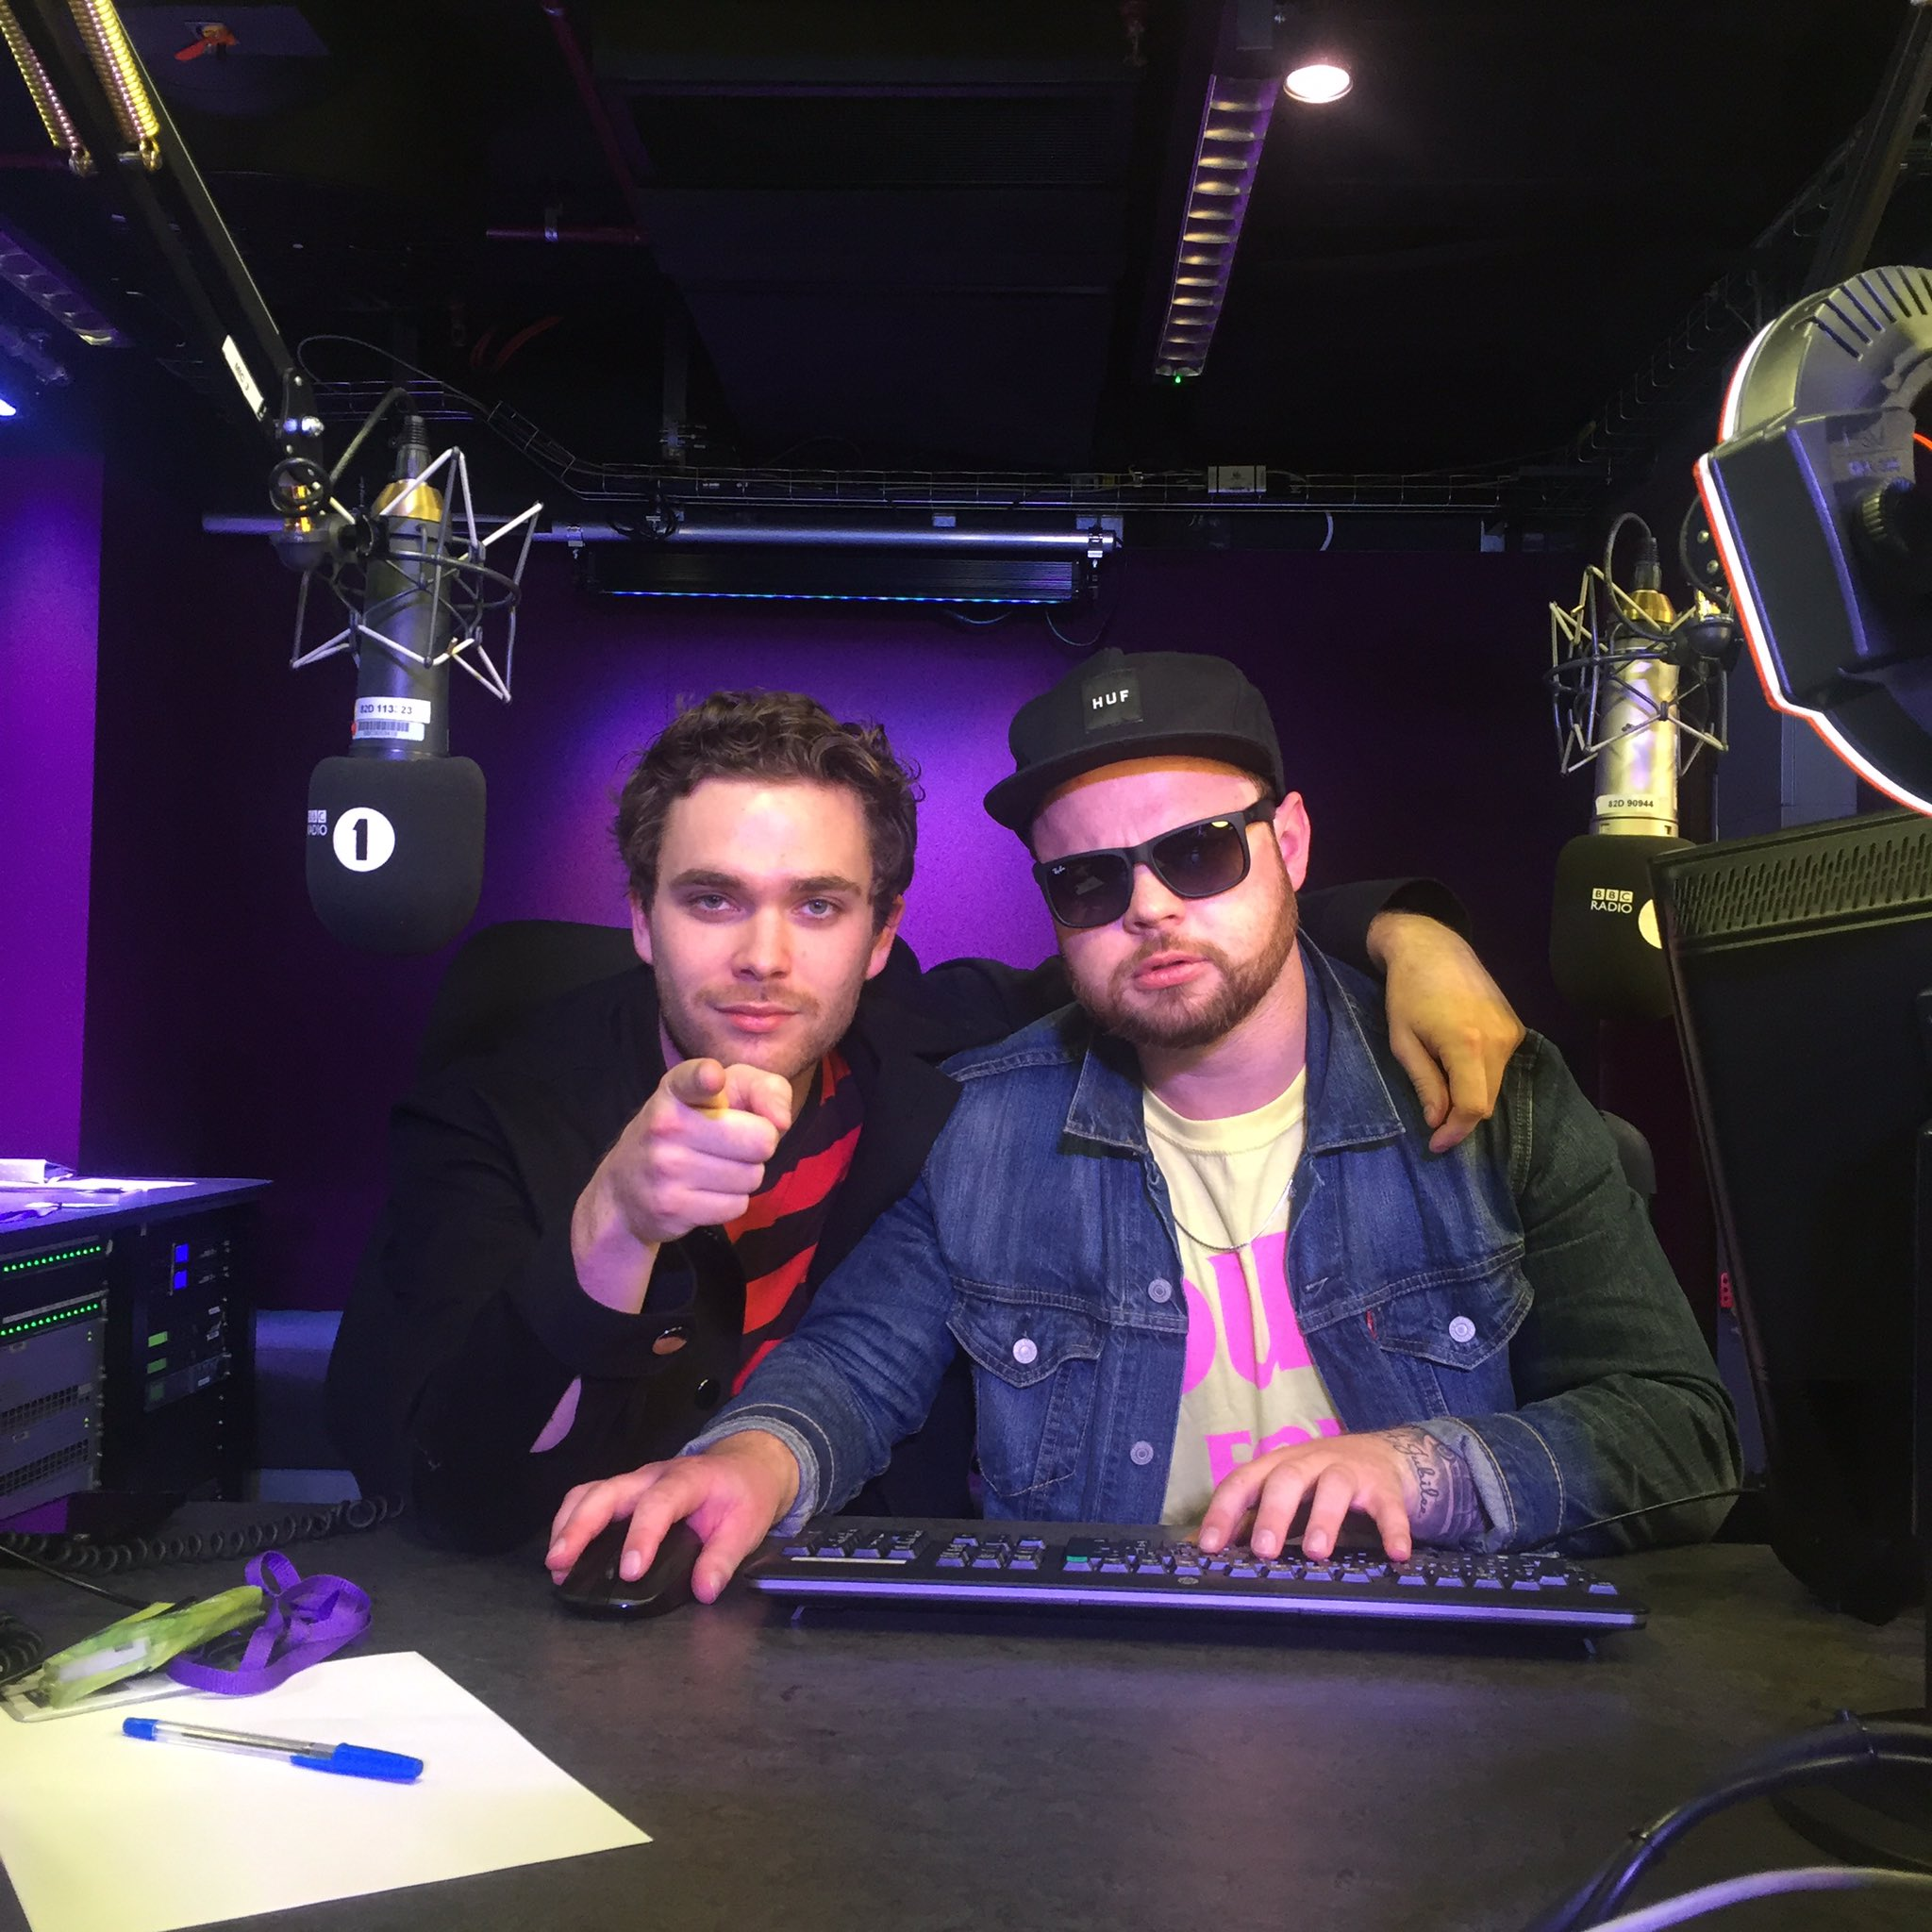 Weds night June 14. @royalblooduk on the show talking How Did We Get So Dark? @BBCR1 10.30pm #royalblood https://t.co/ouCmplC1ML